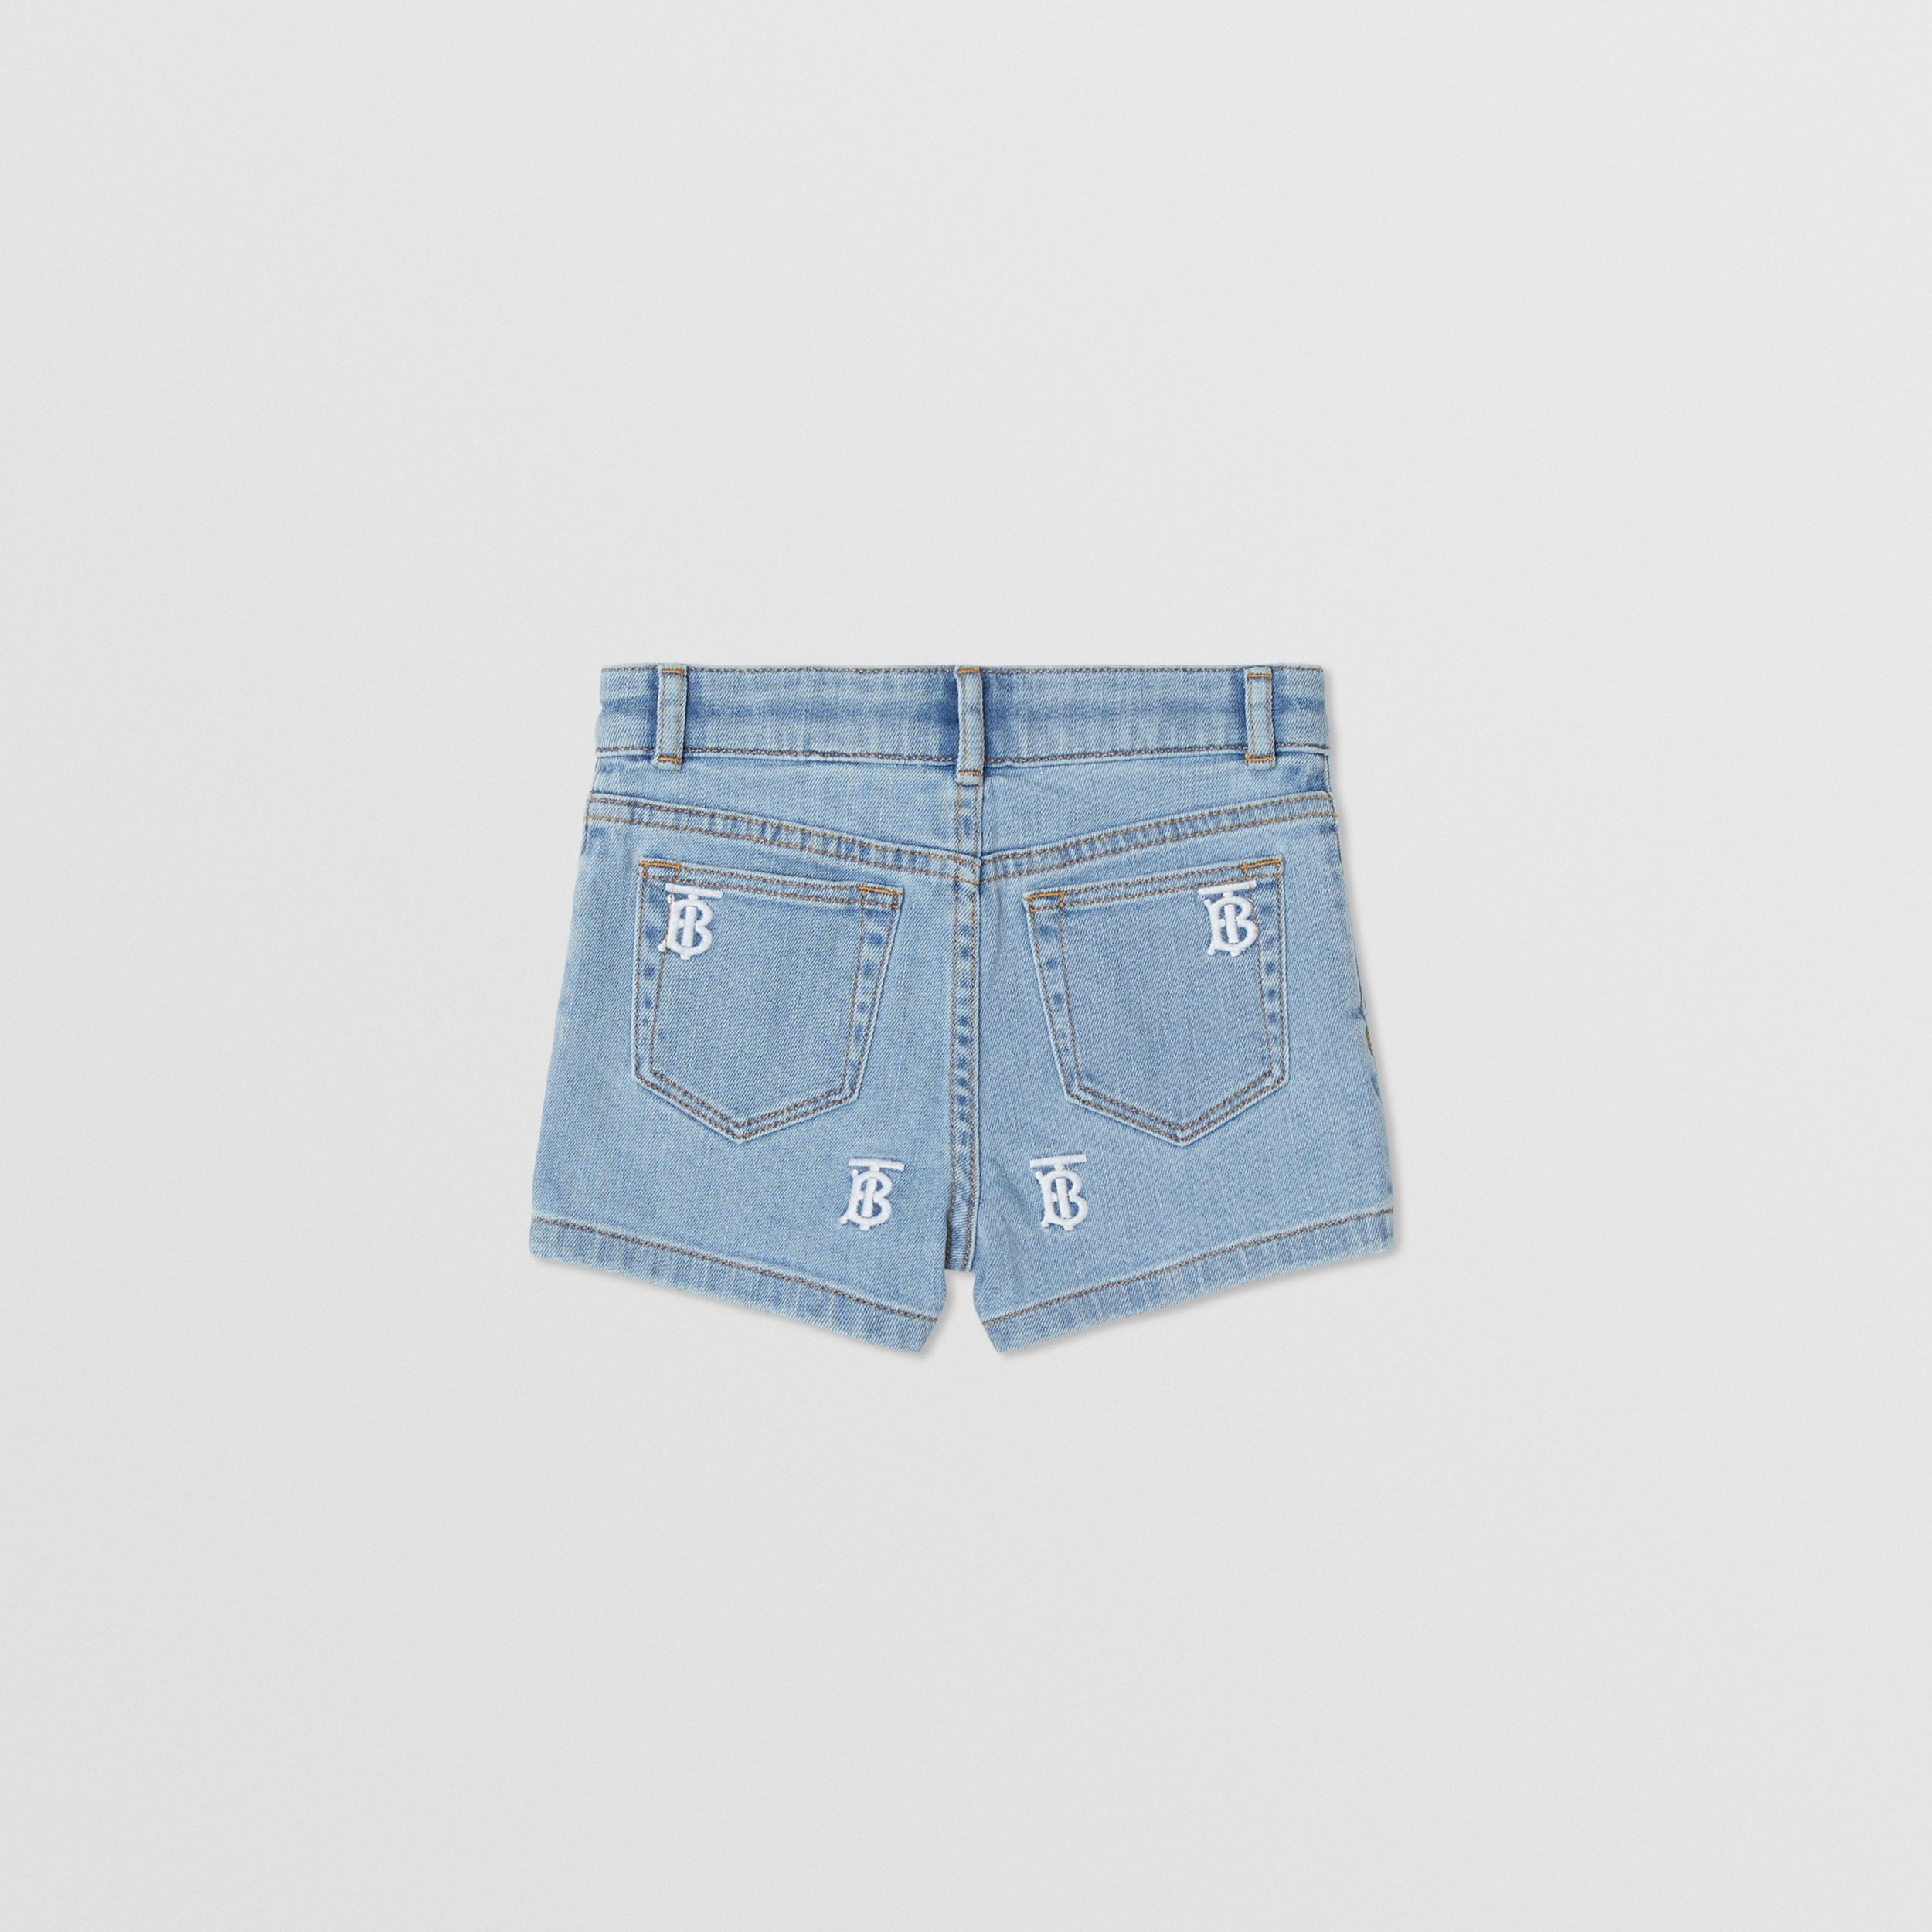 Monogram Motif Stretch Denim Shorts in Pale Blue | Burberry - 4